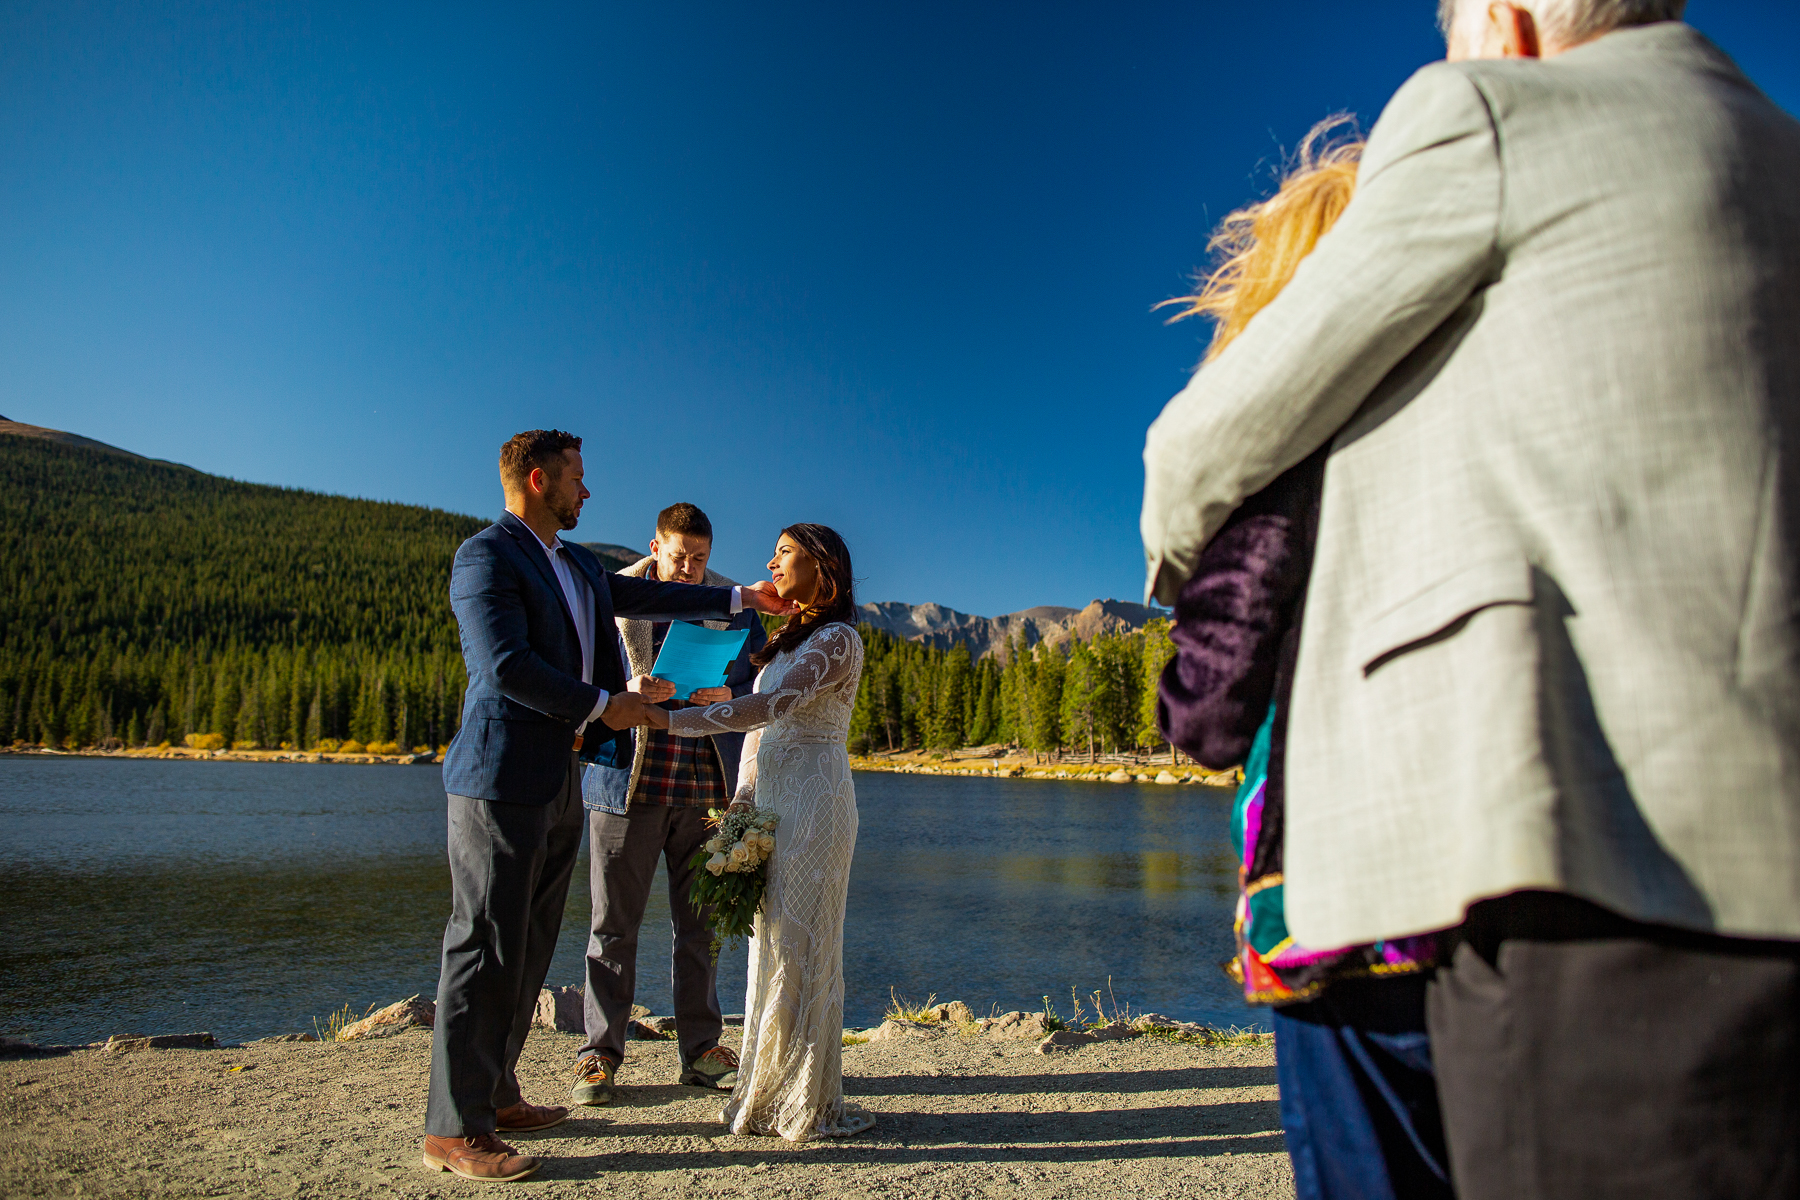 Mount Evans Summit Outdoor Ceremony Photos   A tender touch from the groom as he wipes away a tear